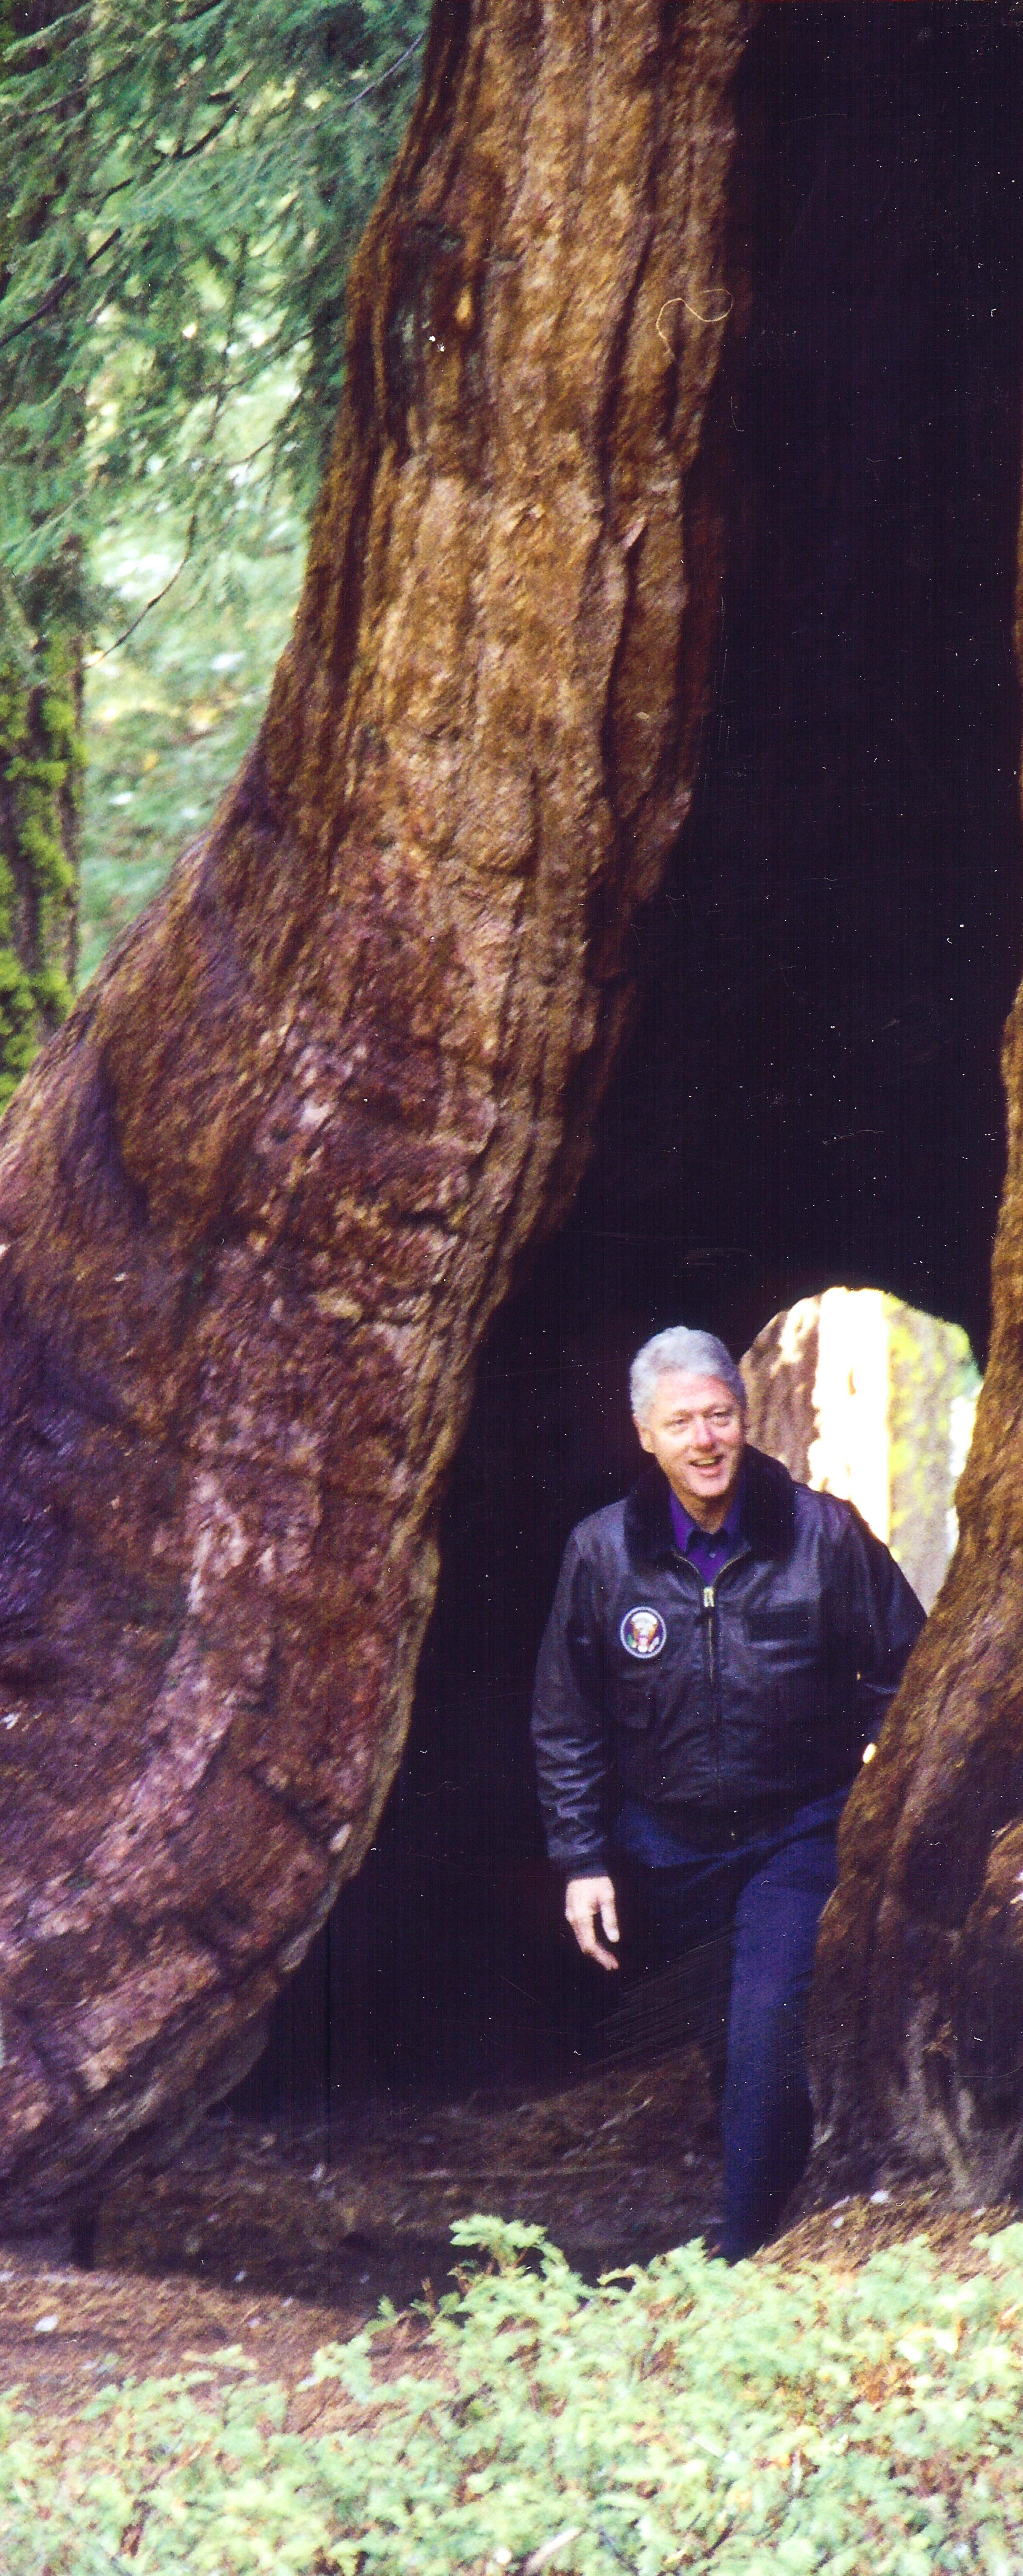 President Clinton visits the giant sequoia where he signed the Proclamation